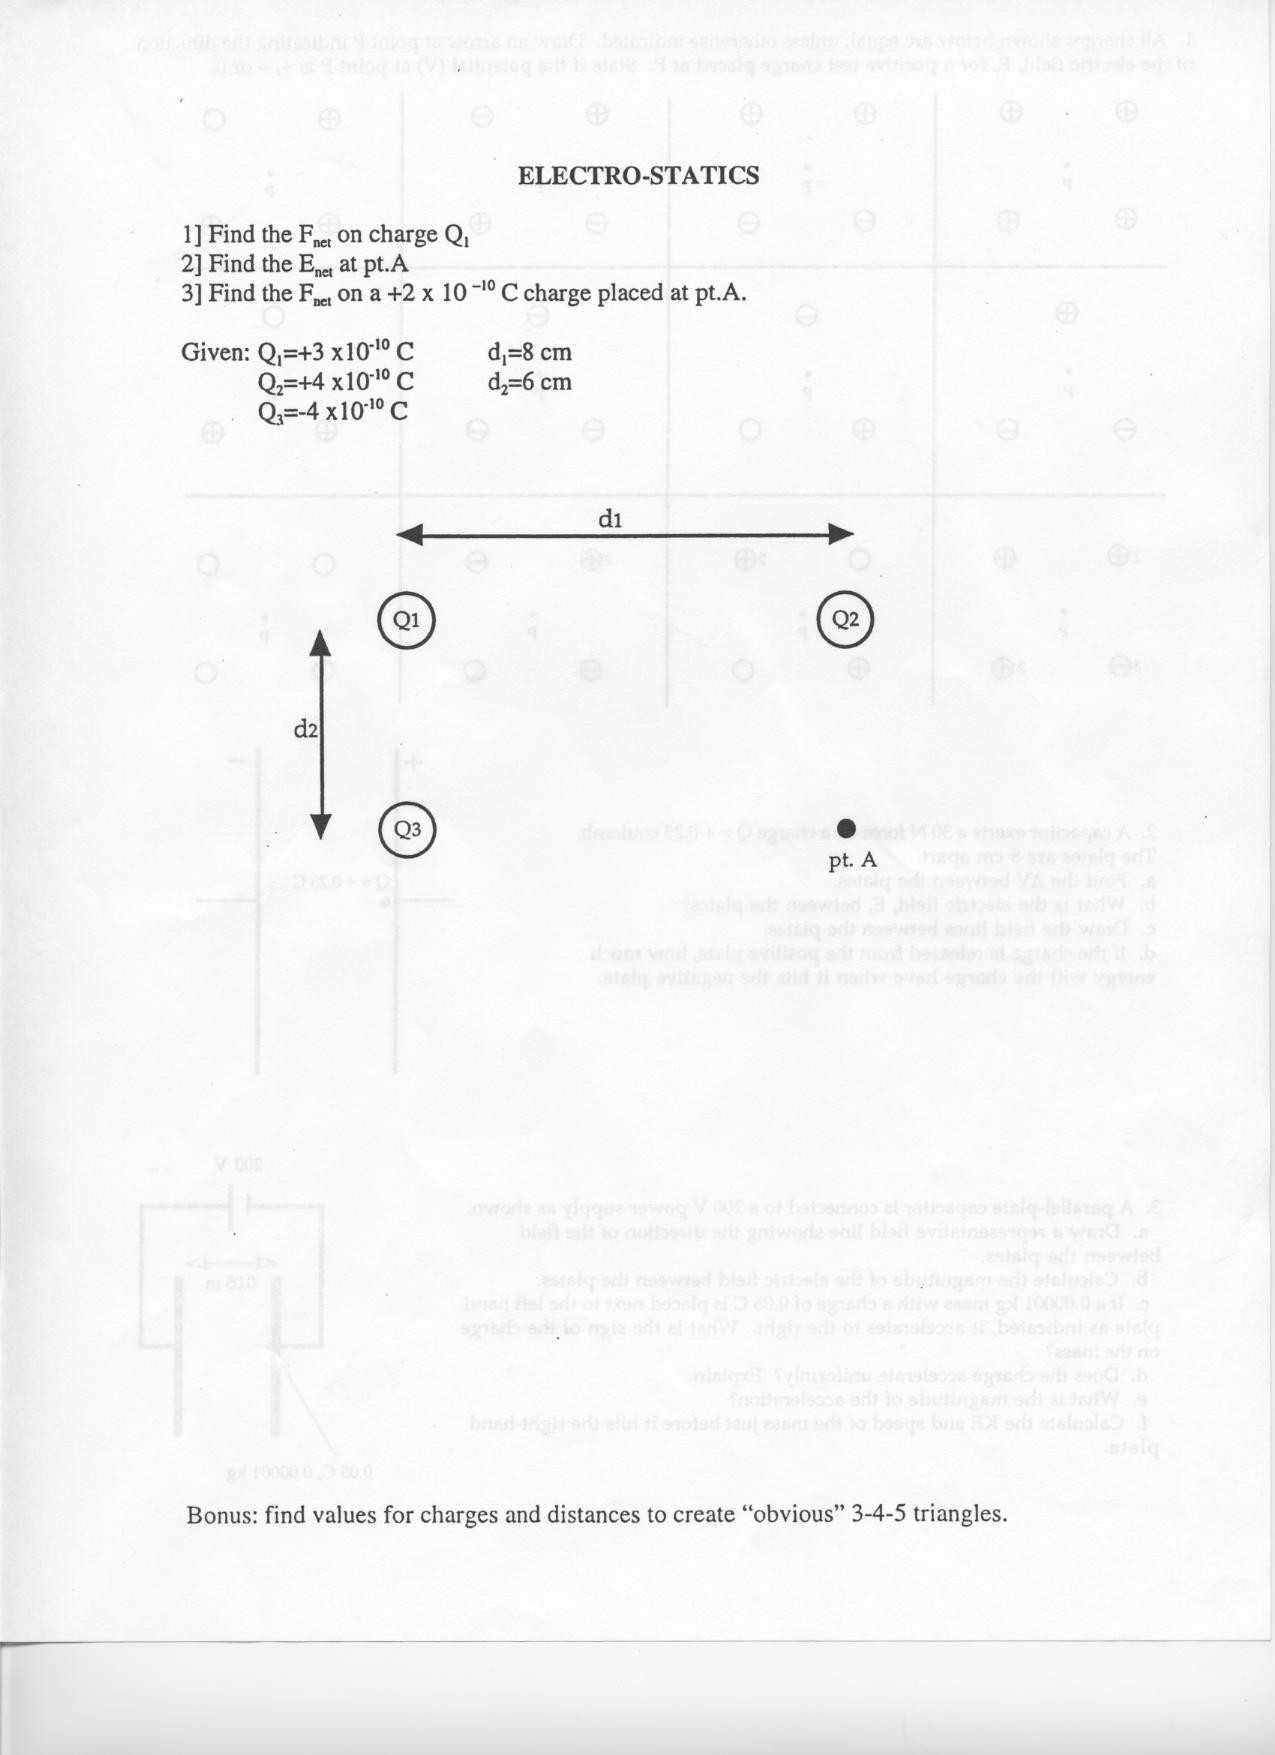 Forces Worksheet 1 Answer Key Physics Handouts Worksheets with Answer W12 Elecrostatics 5k